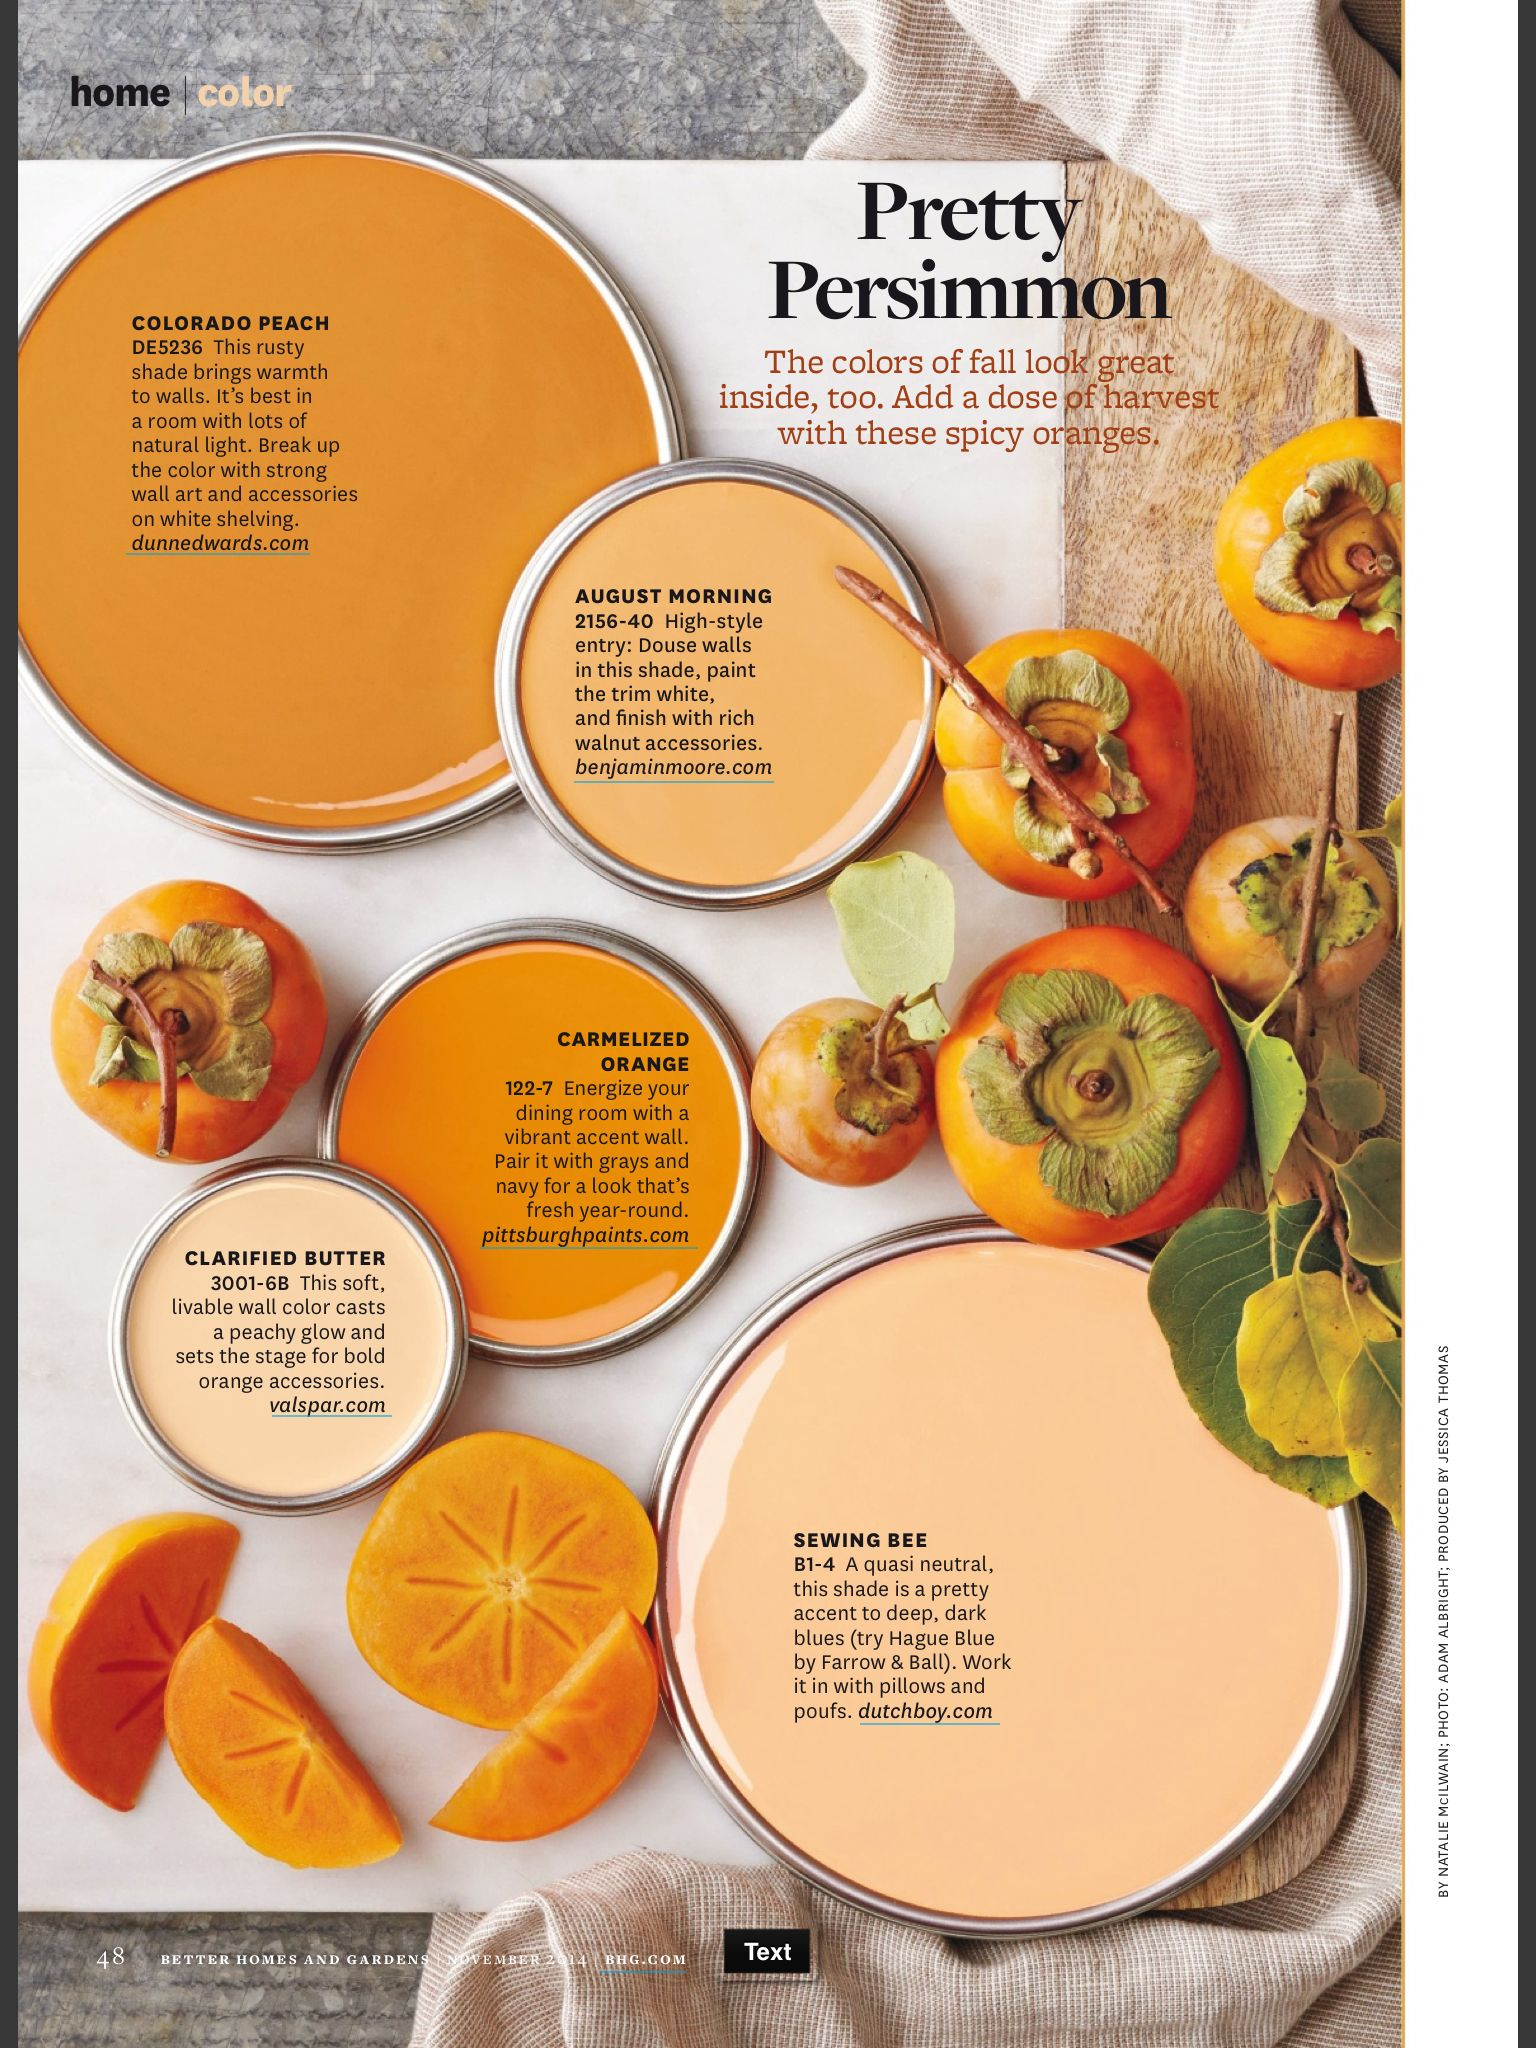 Better Homes and Gardens Pretty Persimmon | Paint Samples in 2018 ...